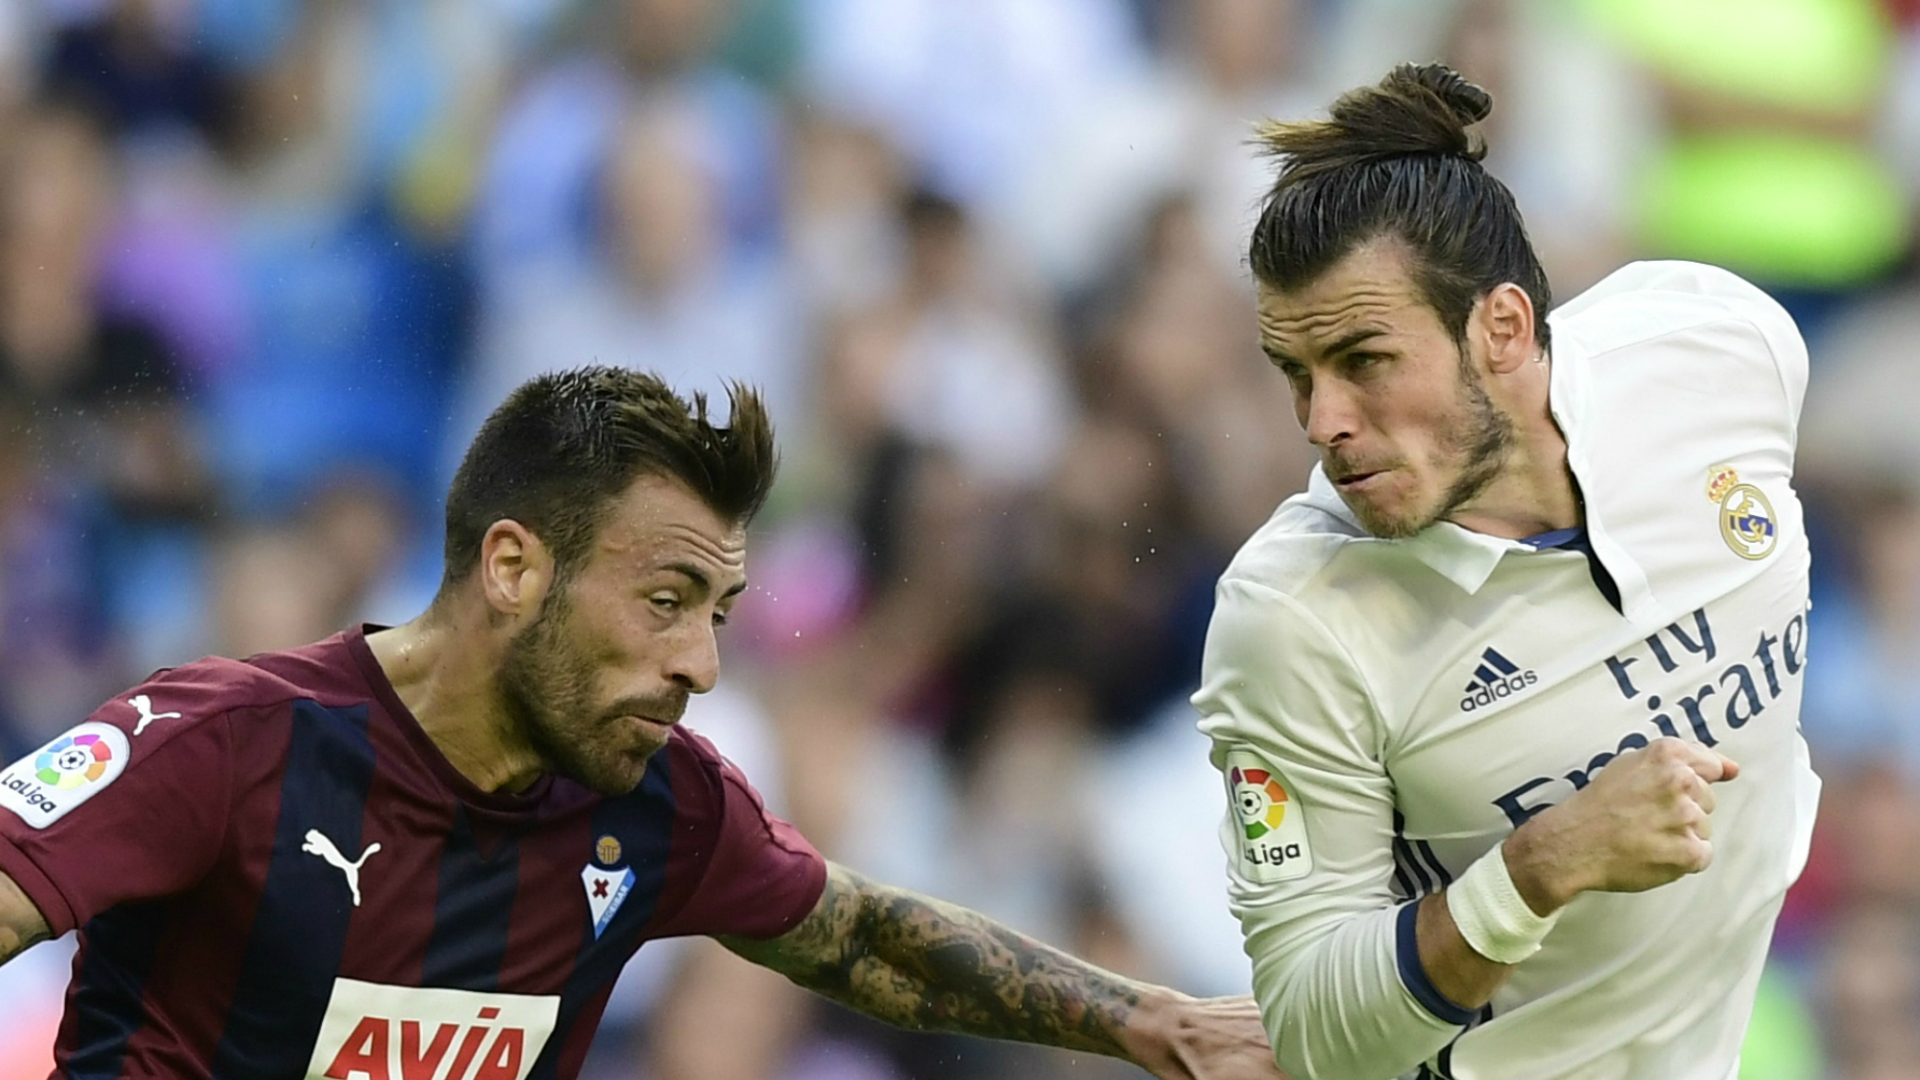 Antonio Luna and Gareth Bale in La Liga